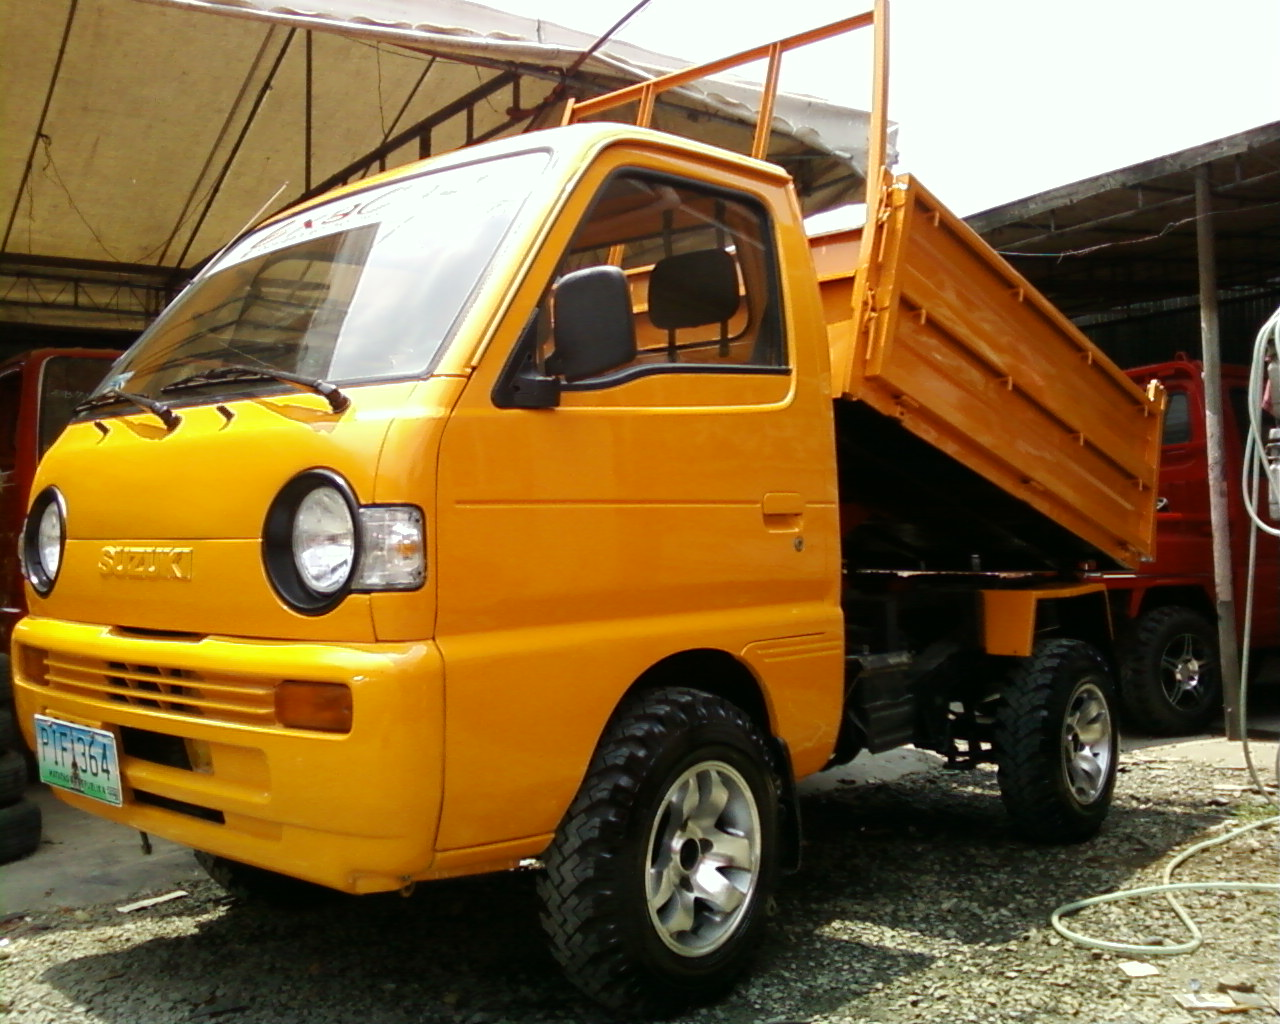 multicab any kind available tel 02-774-3469 and 02-774-3468, - 19027126